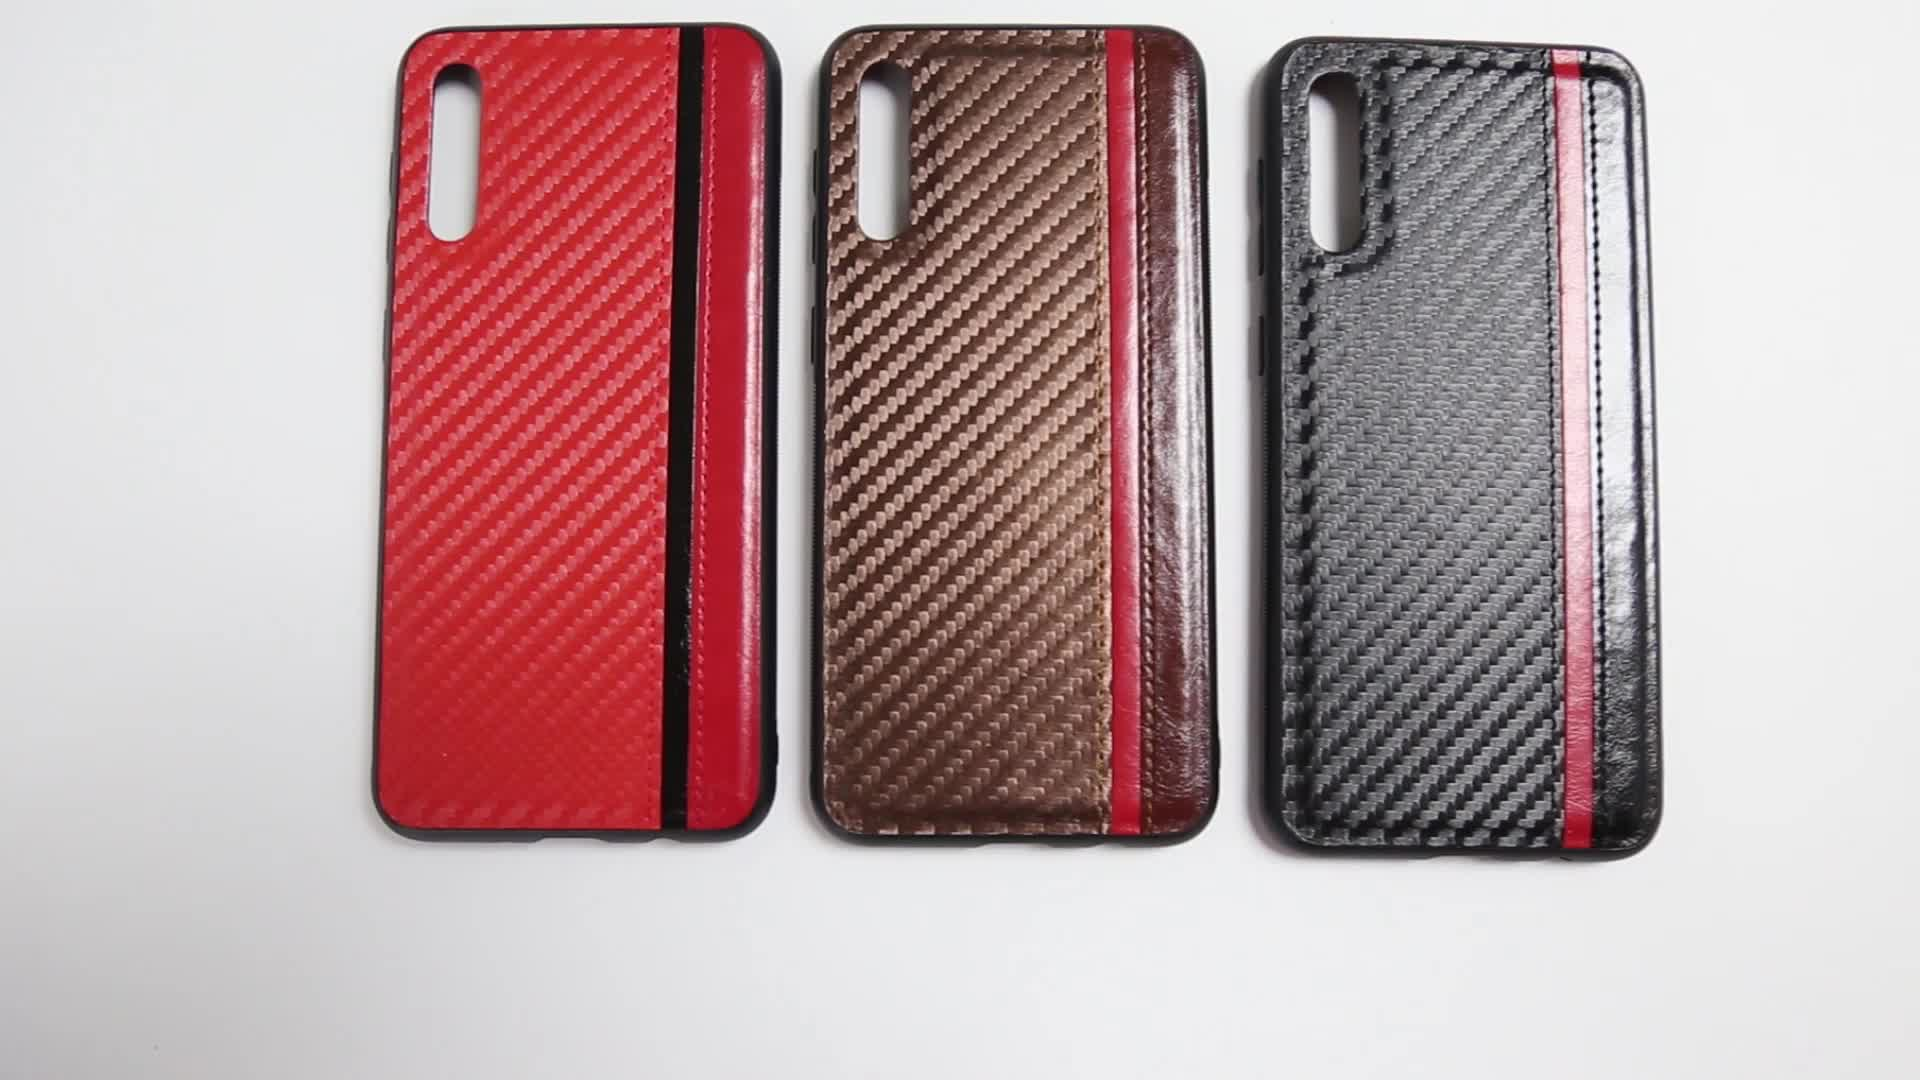 China Product Carbon Fibre Pattern Slight PU Digital Phone Case for Honor 9X 20 Pro Lite 8S 20i 8A View 10 Magic 2 3D Play Max